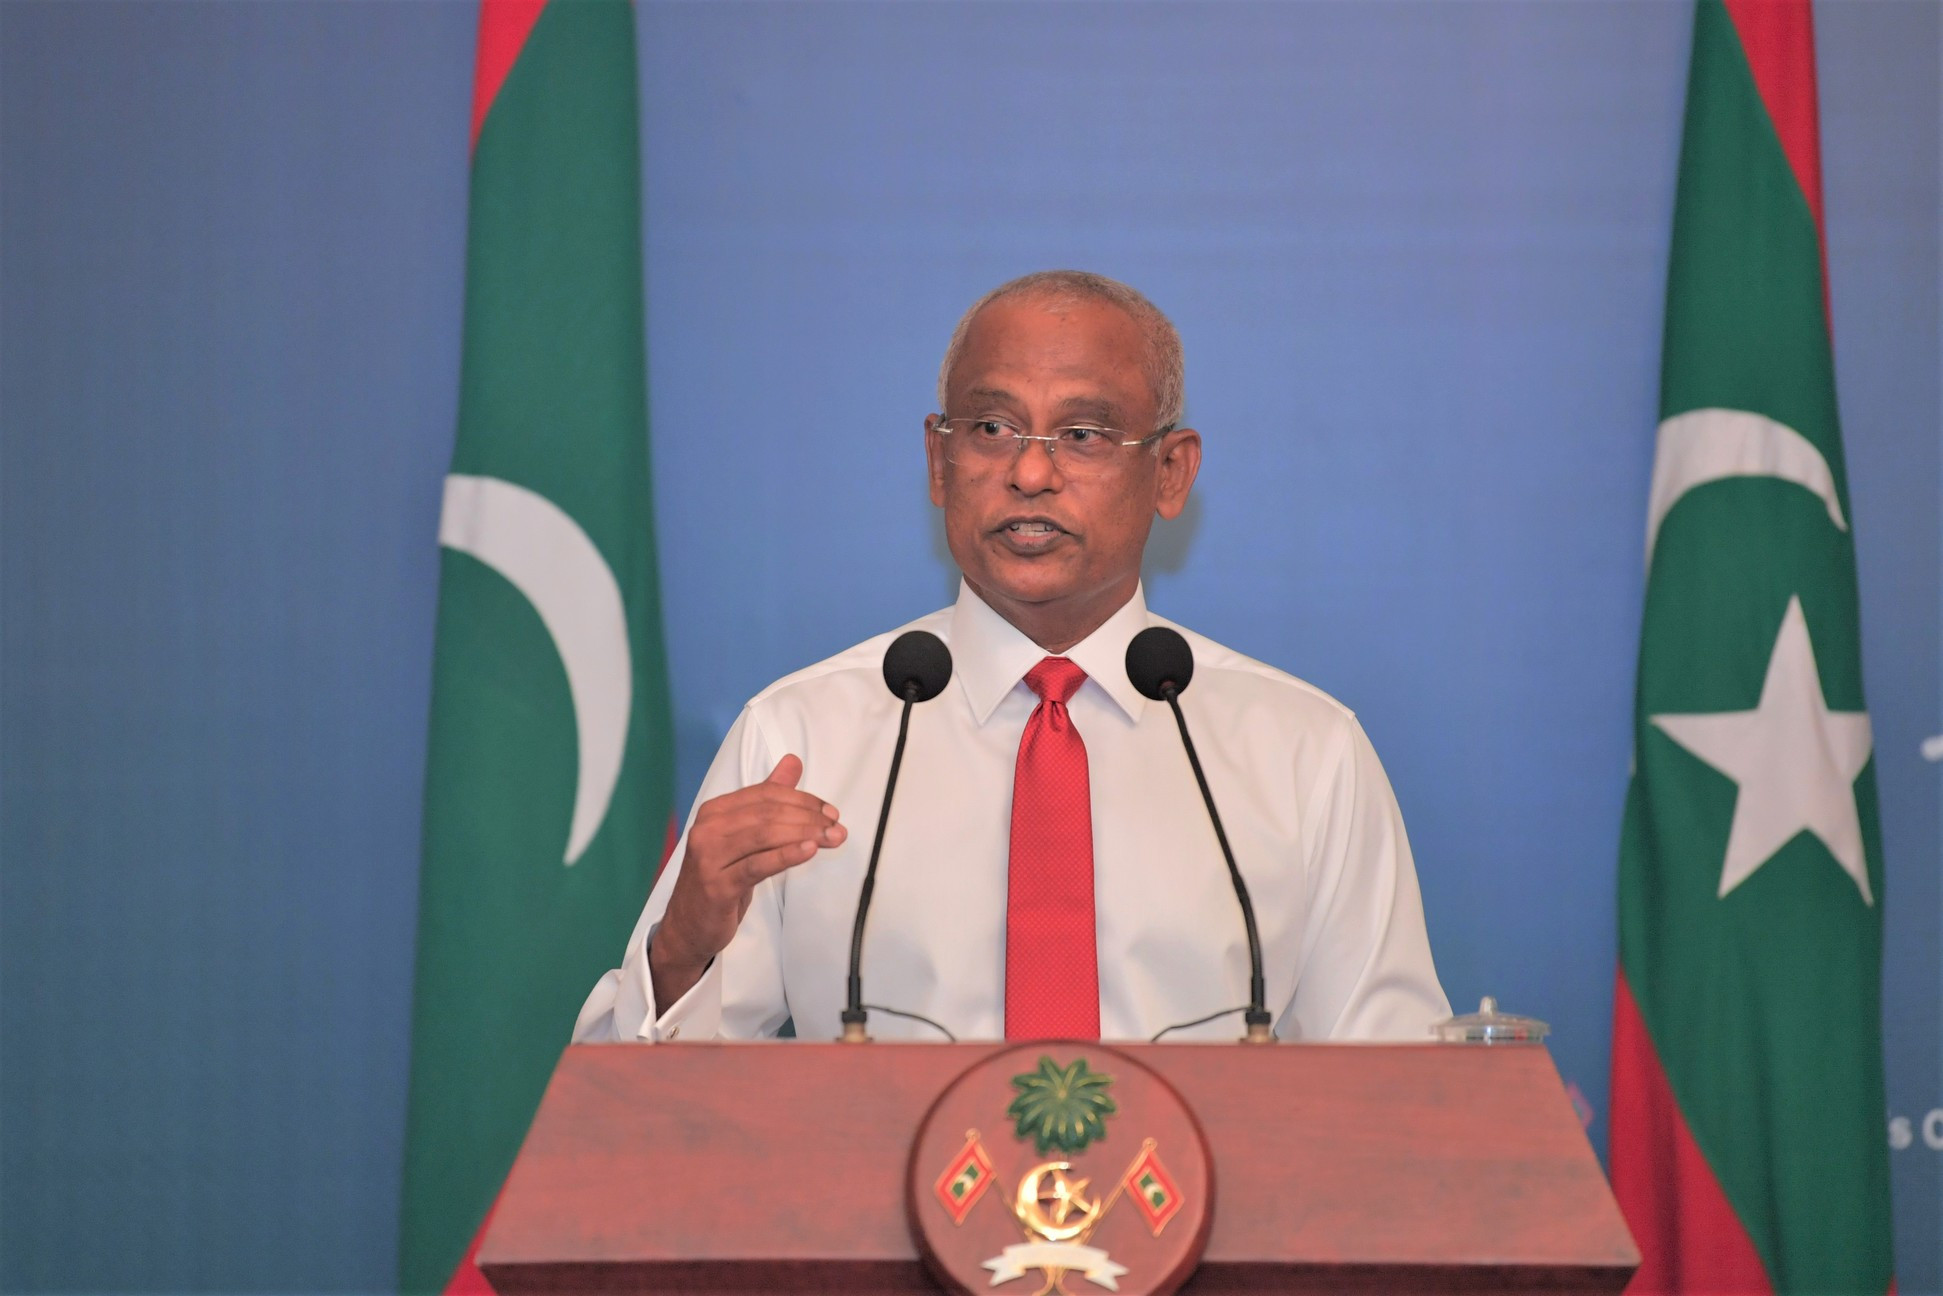 COVID19- Maldives' Status by the President